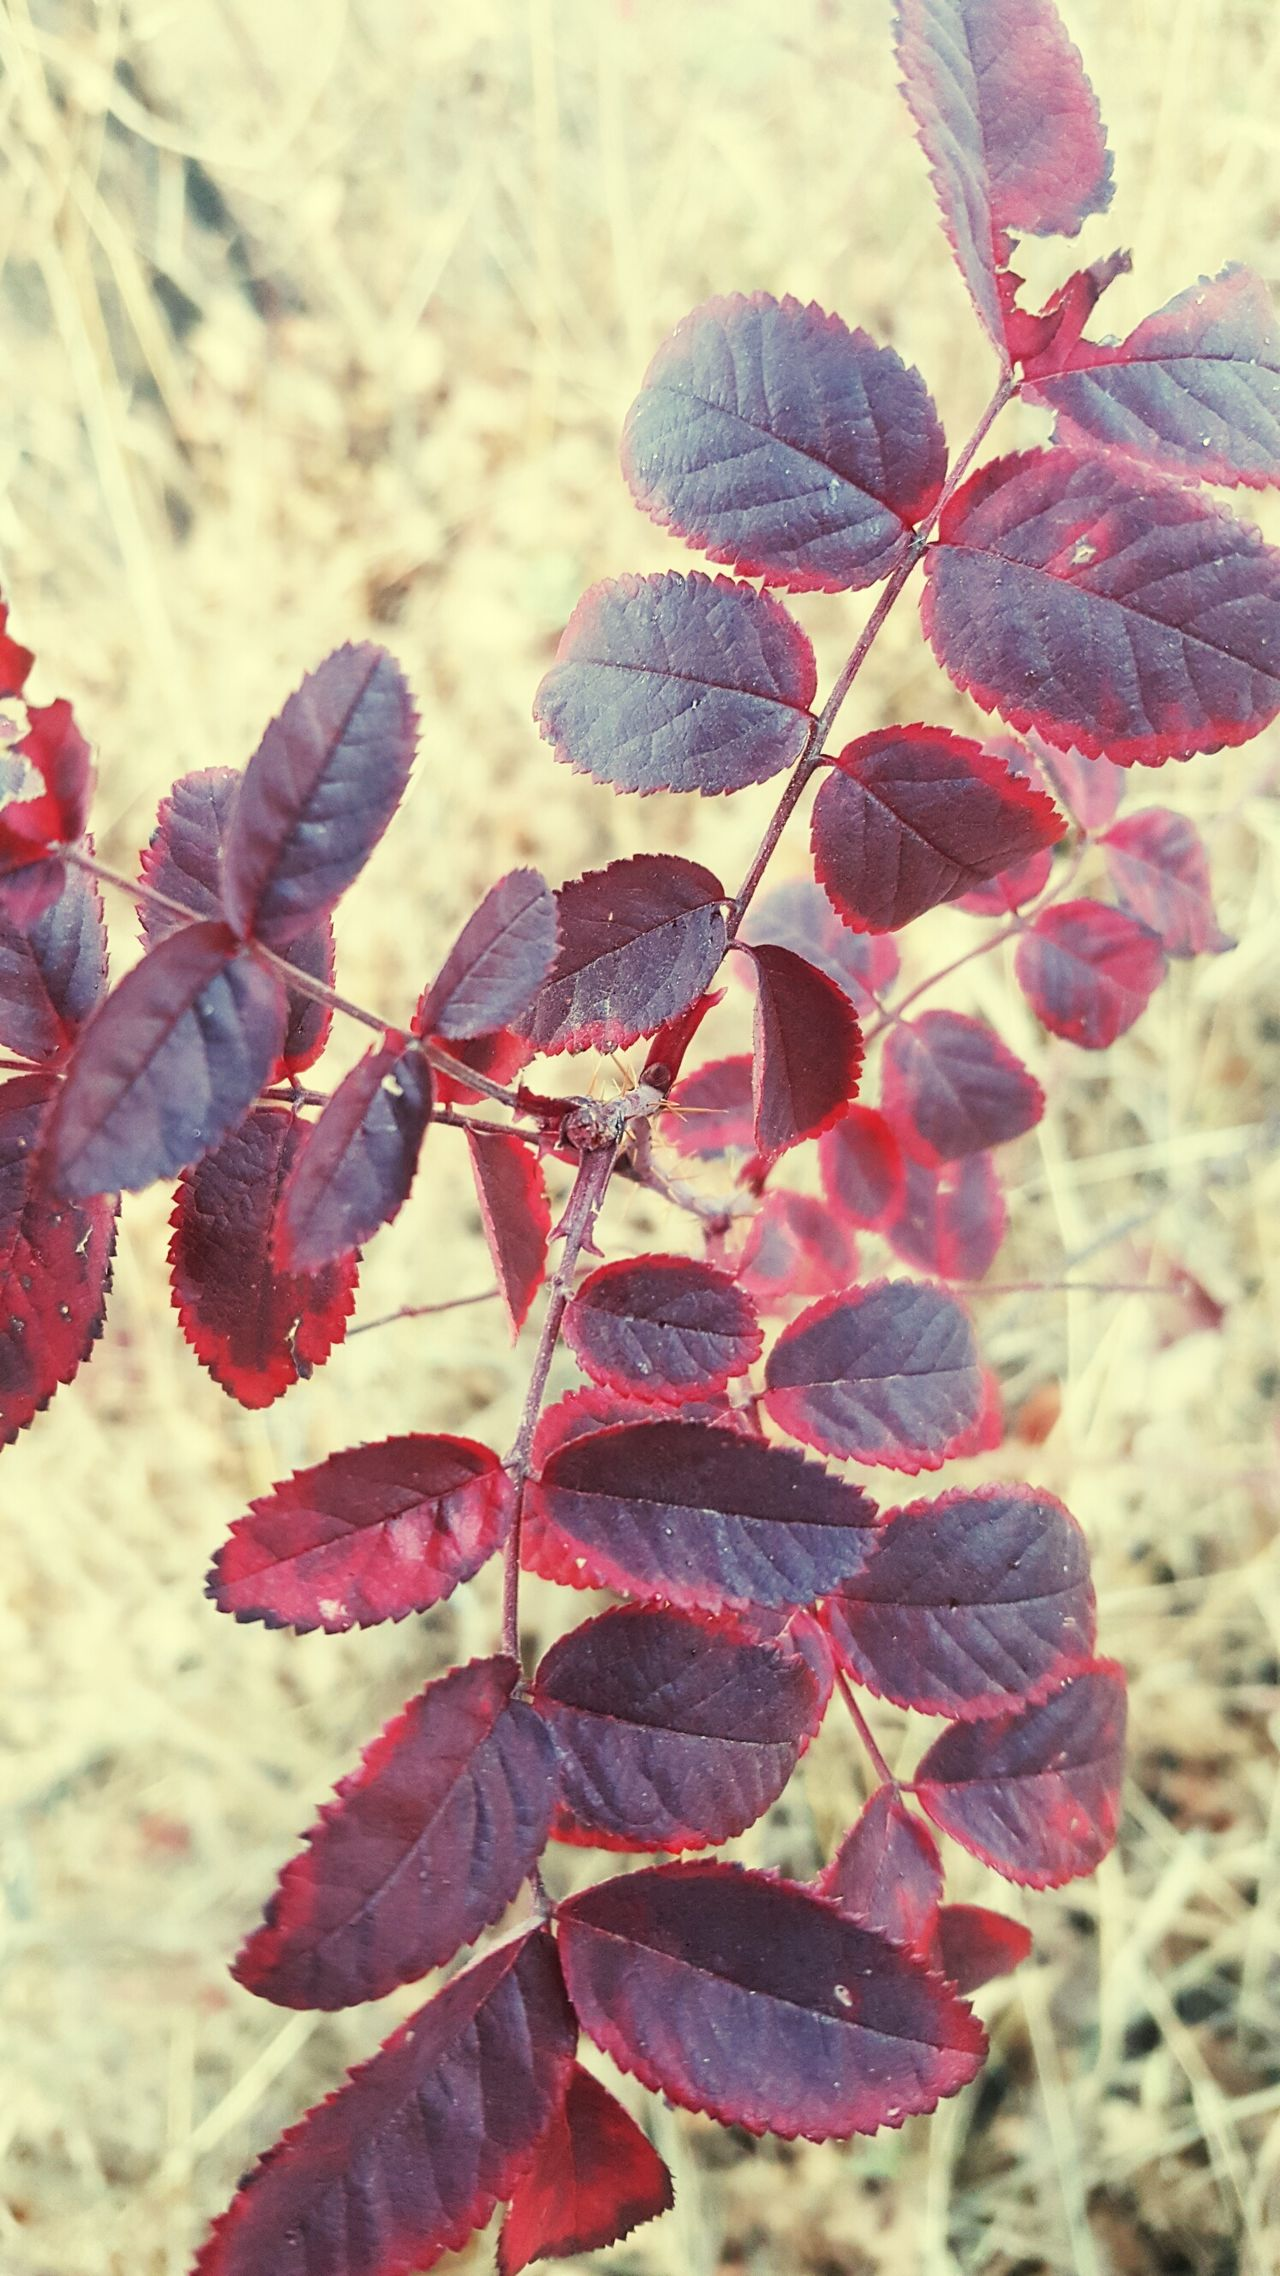 Beauty In Nature Nature Outdoors Creekside Trail Landscape Autumn Red Tree Branch Leaf Growth Plant Freshness Maroon